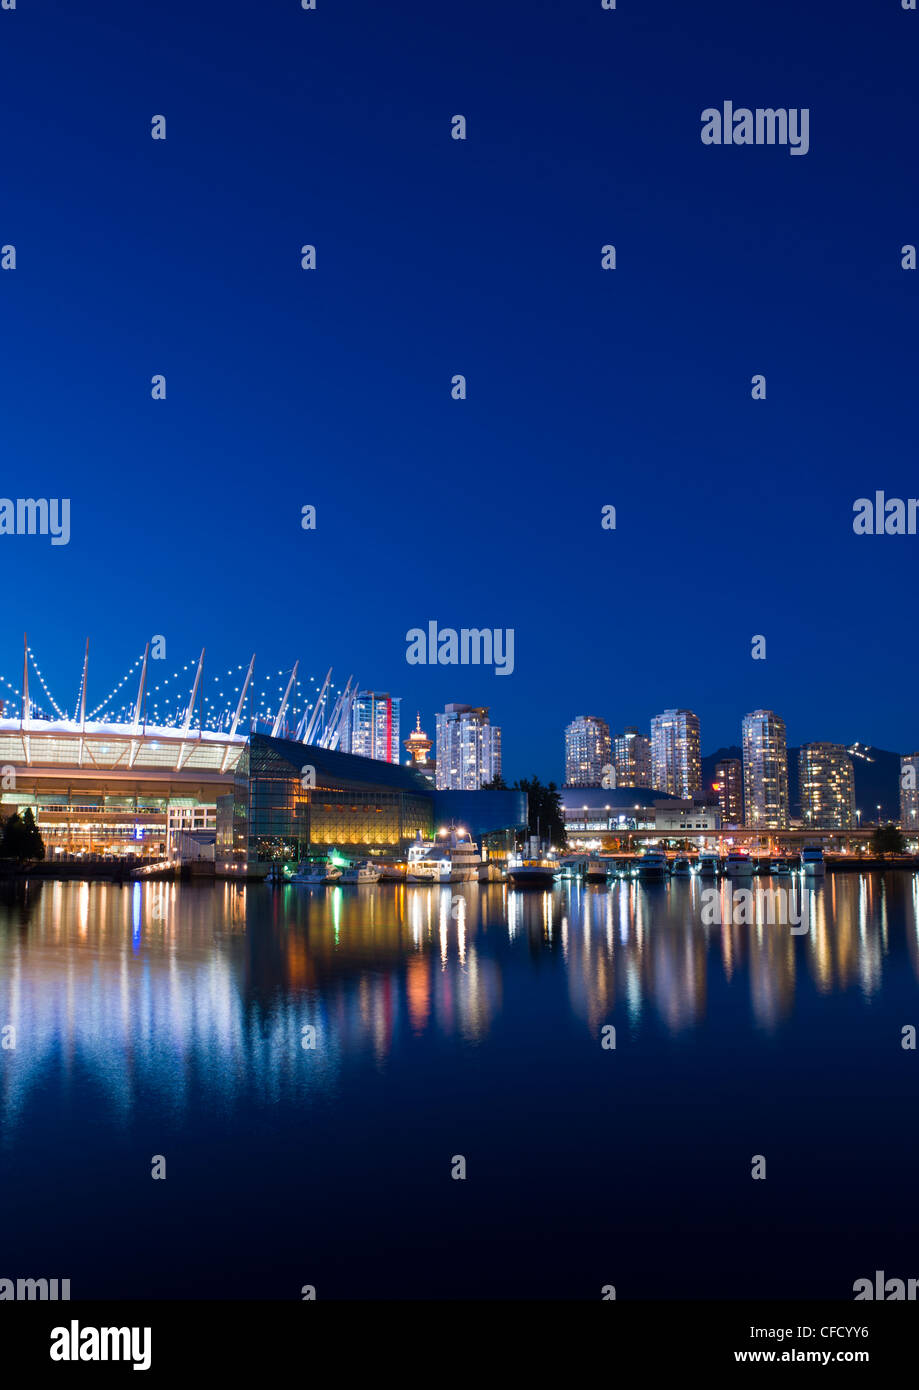 City skyline with new retractable roof on BC Place Stadium, False Creek, Vancouver, British Columbia, Canada - Stock Image